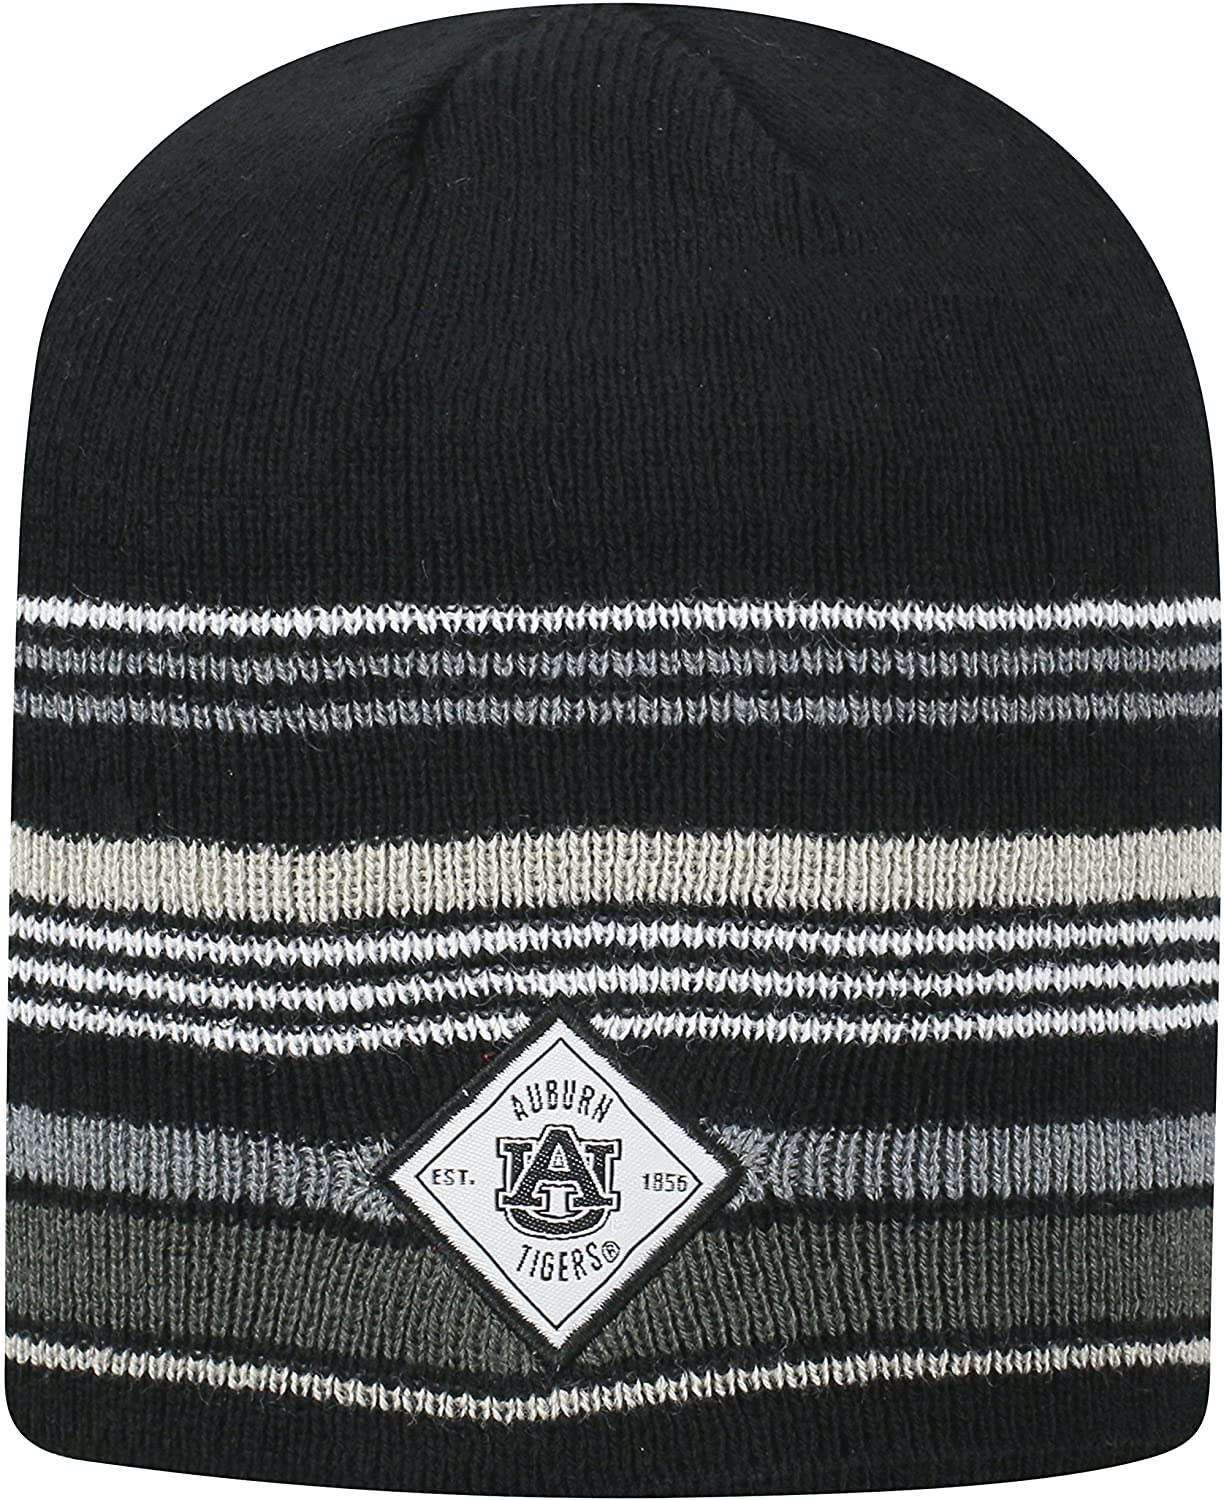 Top of the World Auburn Tigers Official NCAA Uncuffed Knit Avenue Stocking Stretch Sock Hat Cap Beanie 463605